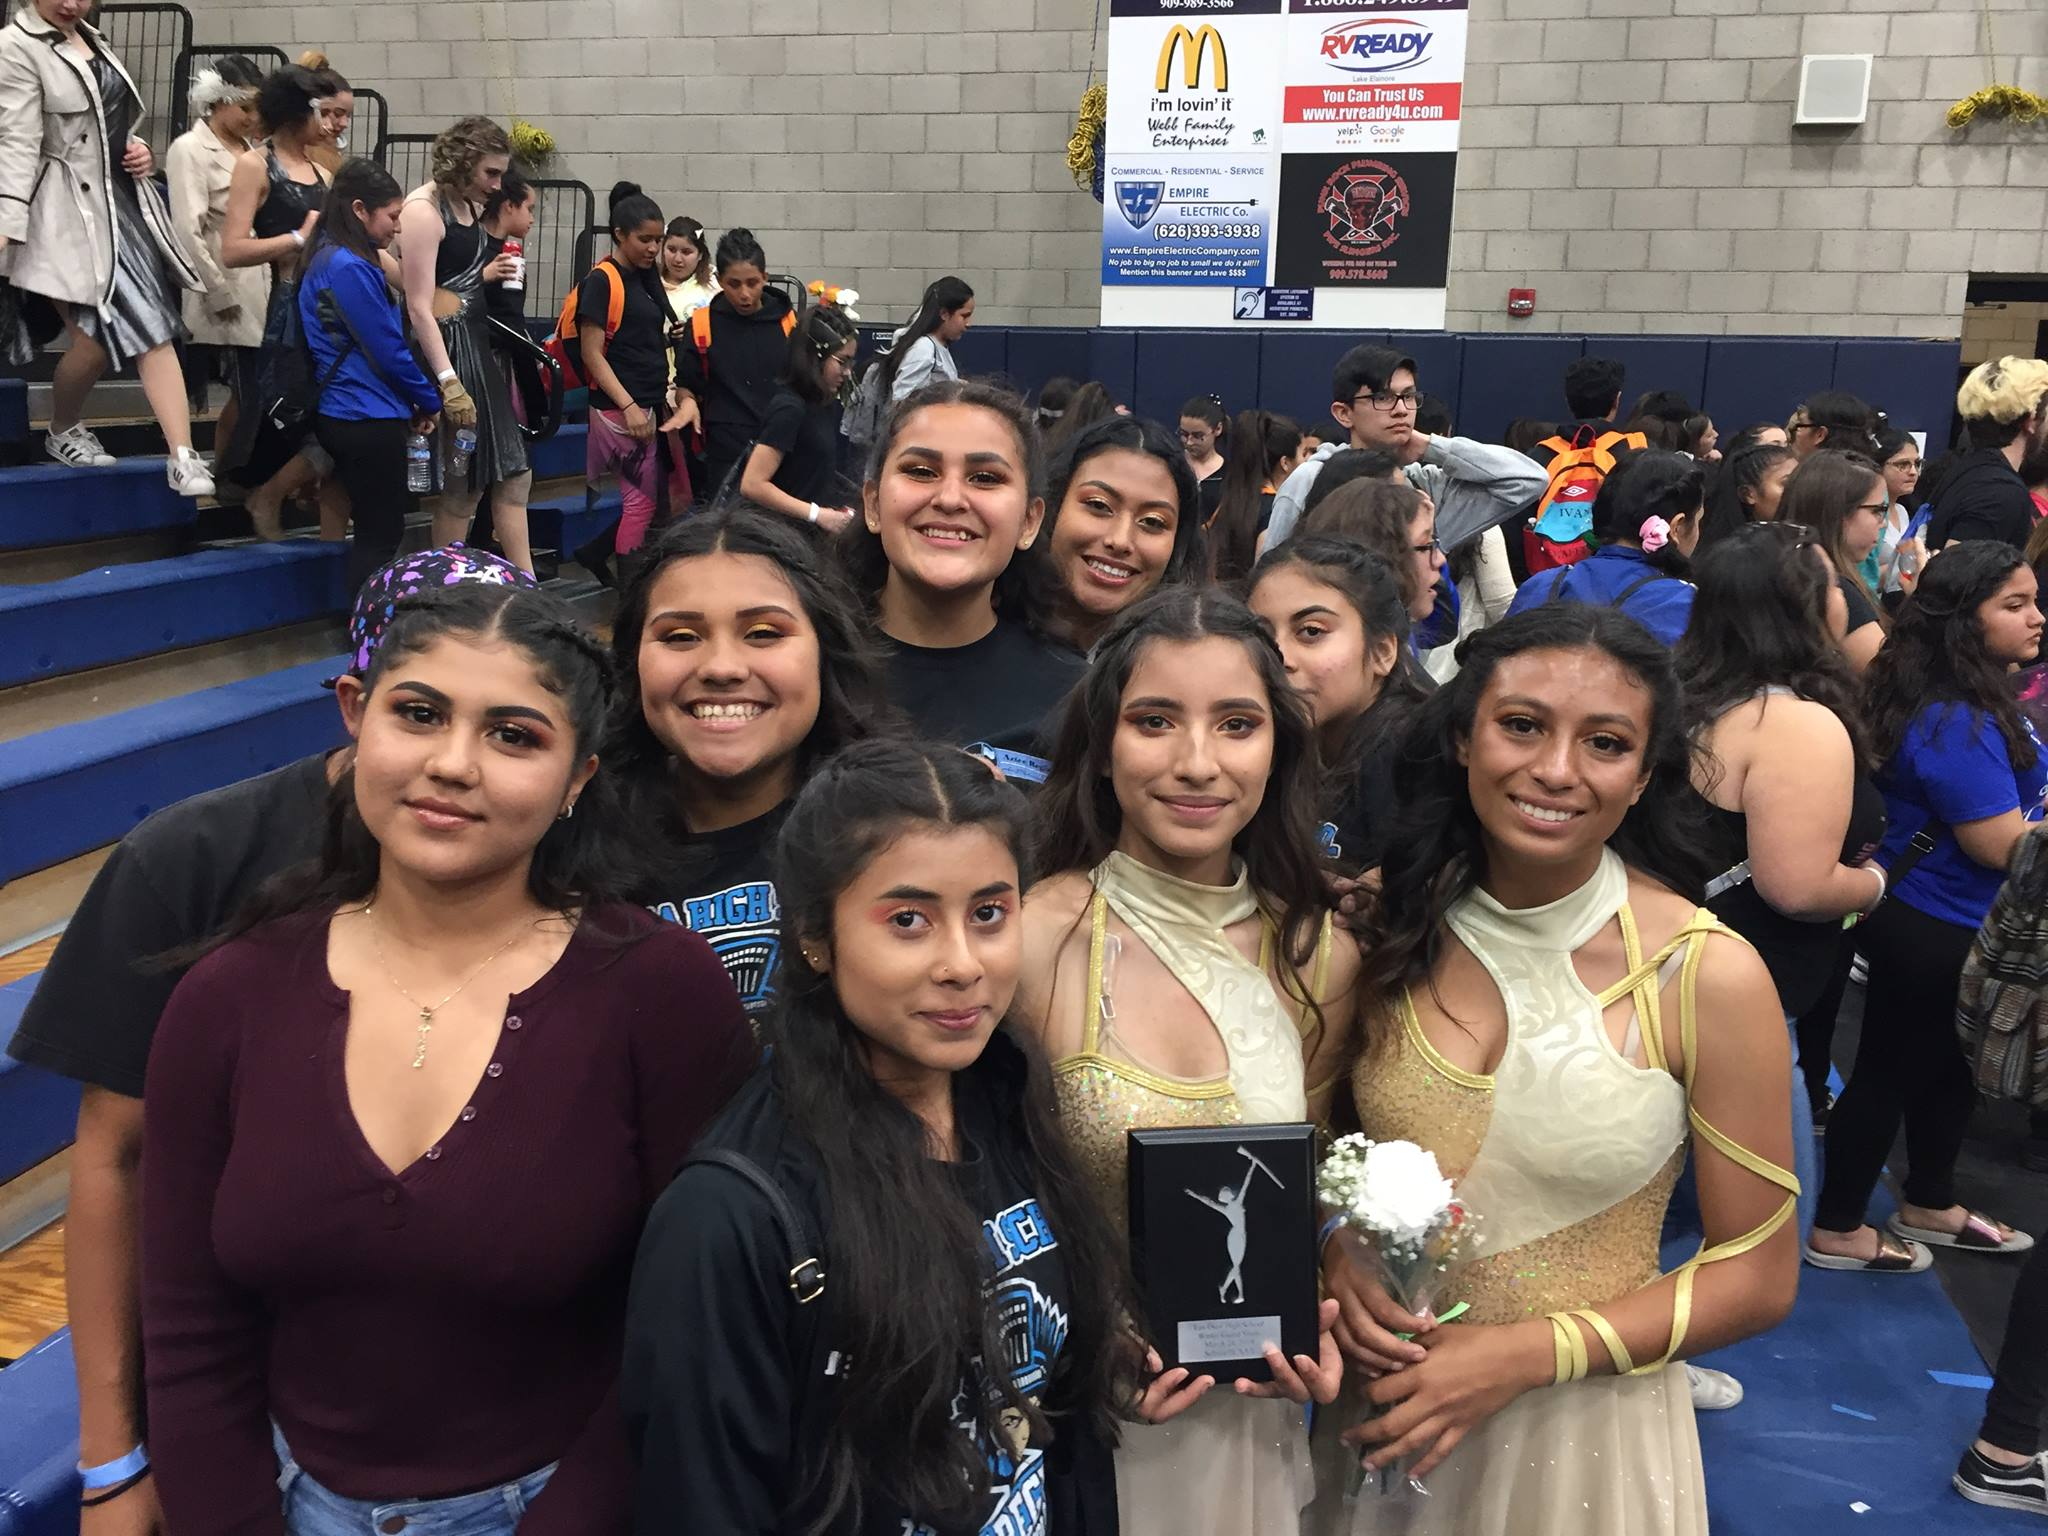 Aztec Regiment had a great weekend with band receiving an unanimous superior at Lakeside High School Friday. Great support from the city of Azusa at our Annual Menudo Cook-Off & Car Show. Thank you to all the hard working parents and students who help to make this a great fundraiser. Finished the weekend with winter guard placing 2nd at Los Osos HS WGASC Tournament.